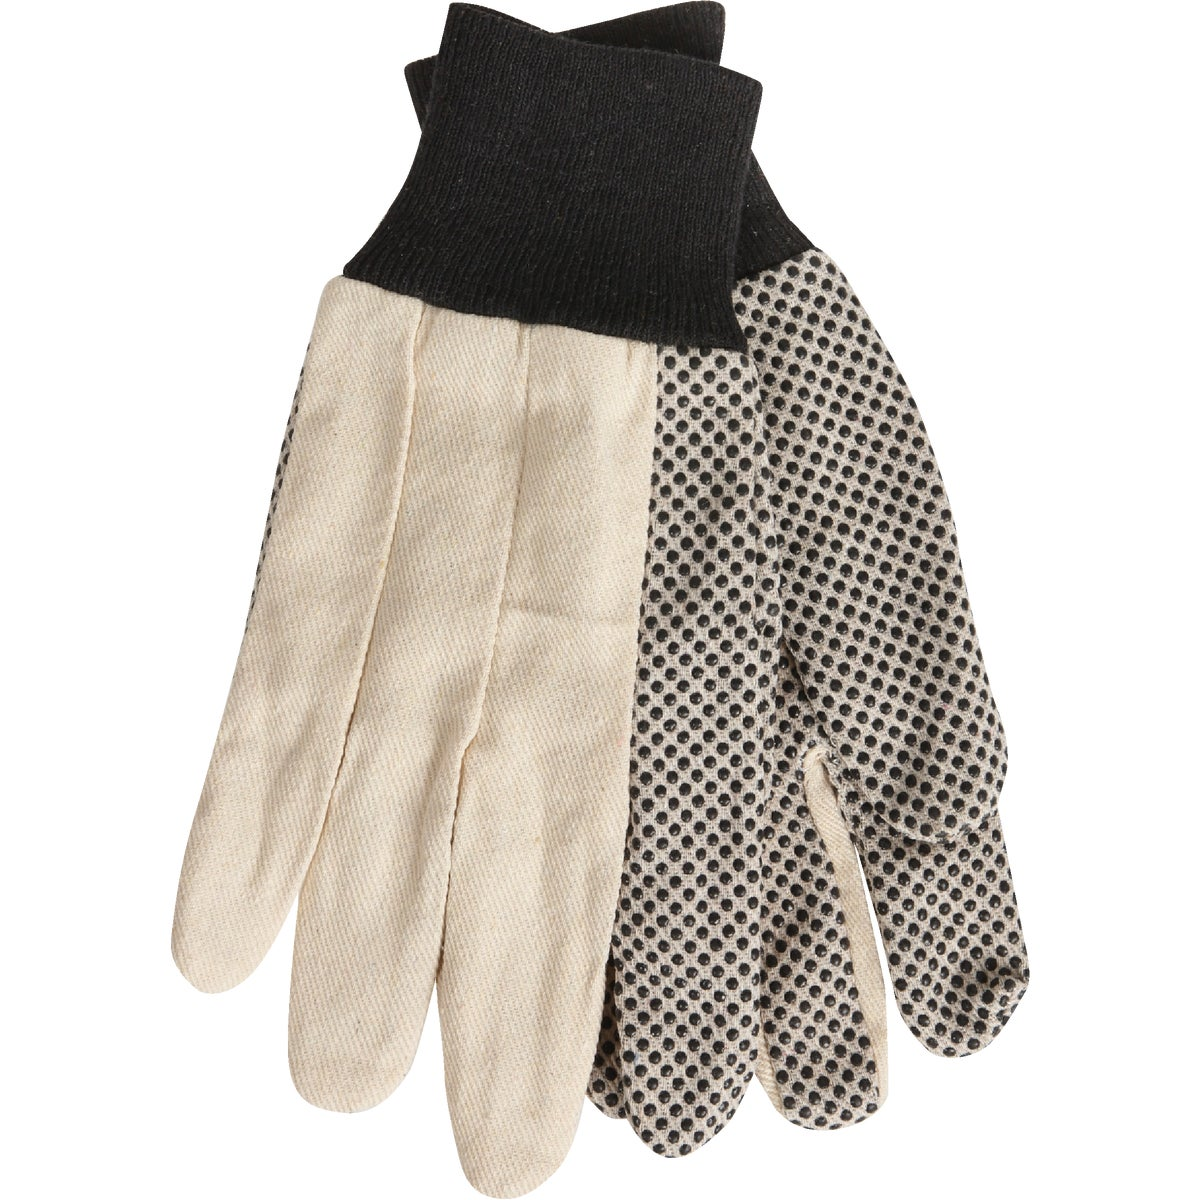 CANVAS DOT GLOVE